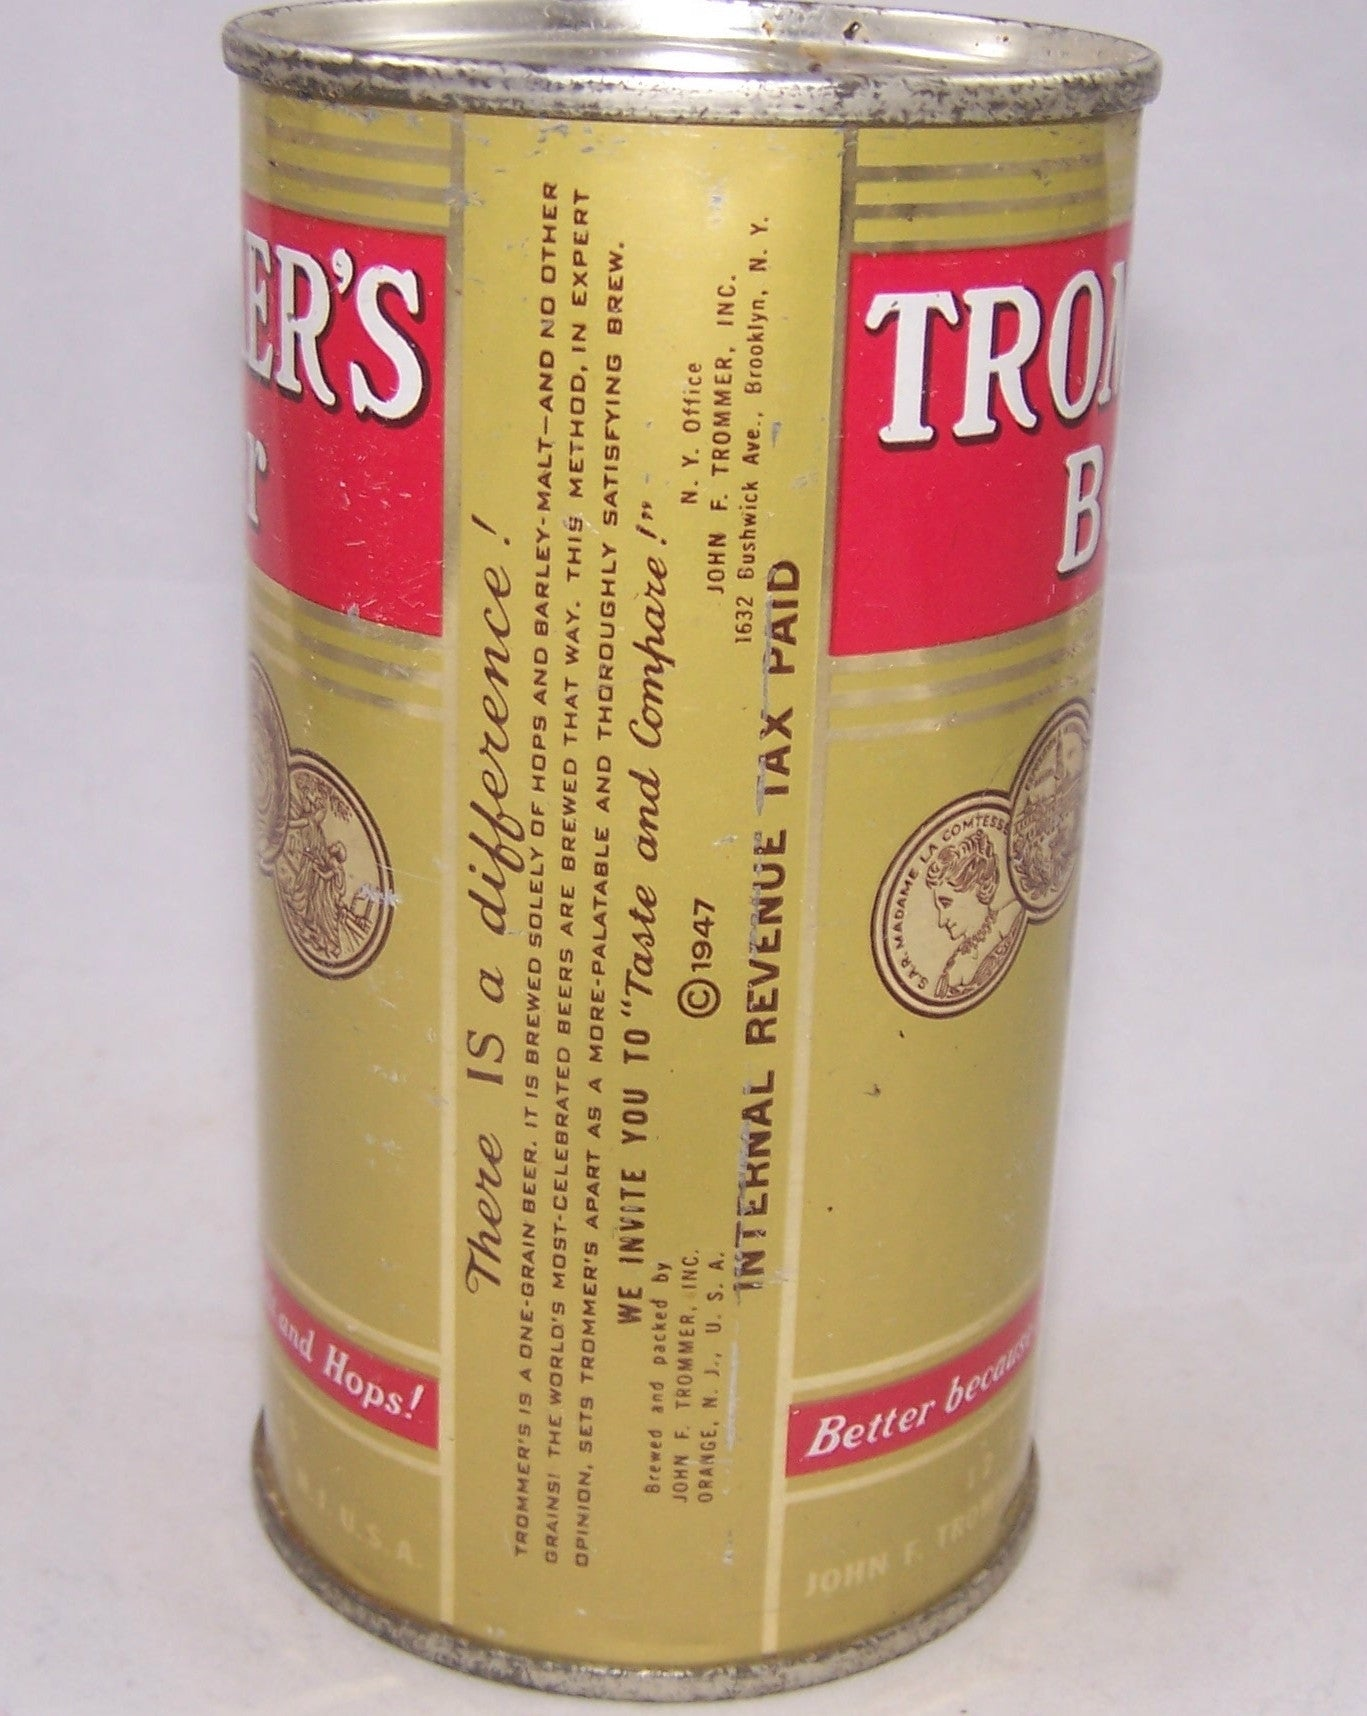 Trommer's Beer, USBC 139-37, Grade 1 to 1/1+ Sold on 03/26/17